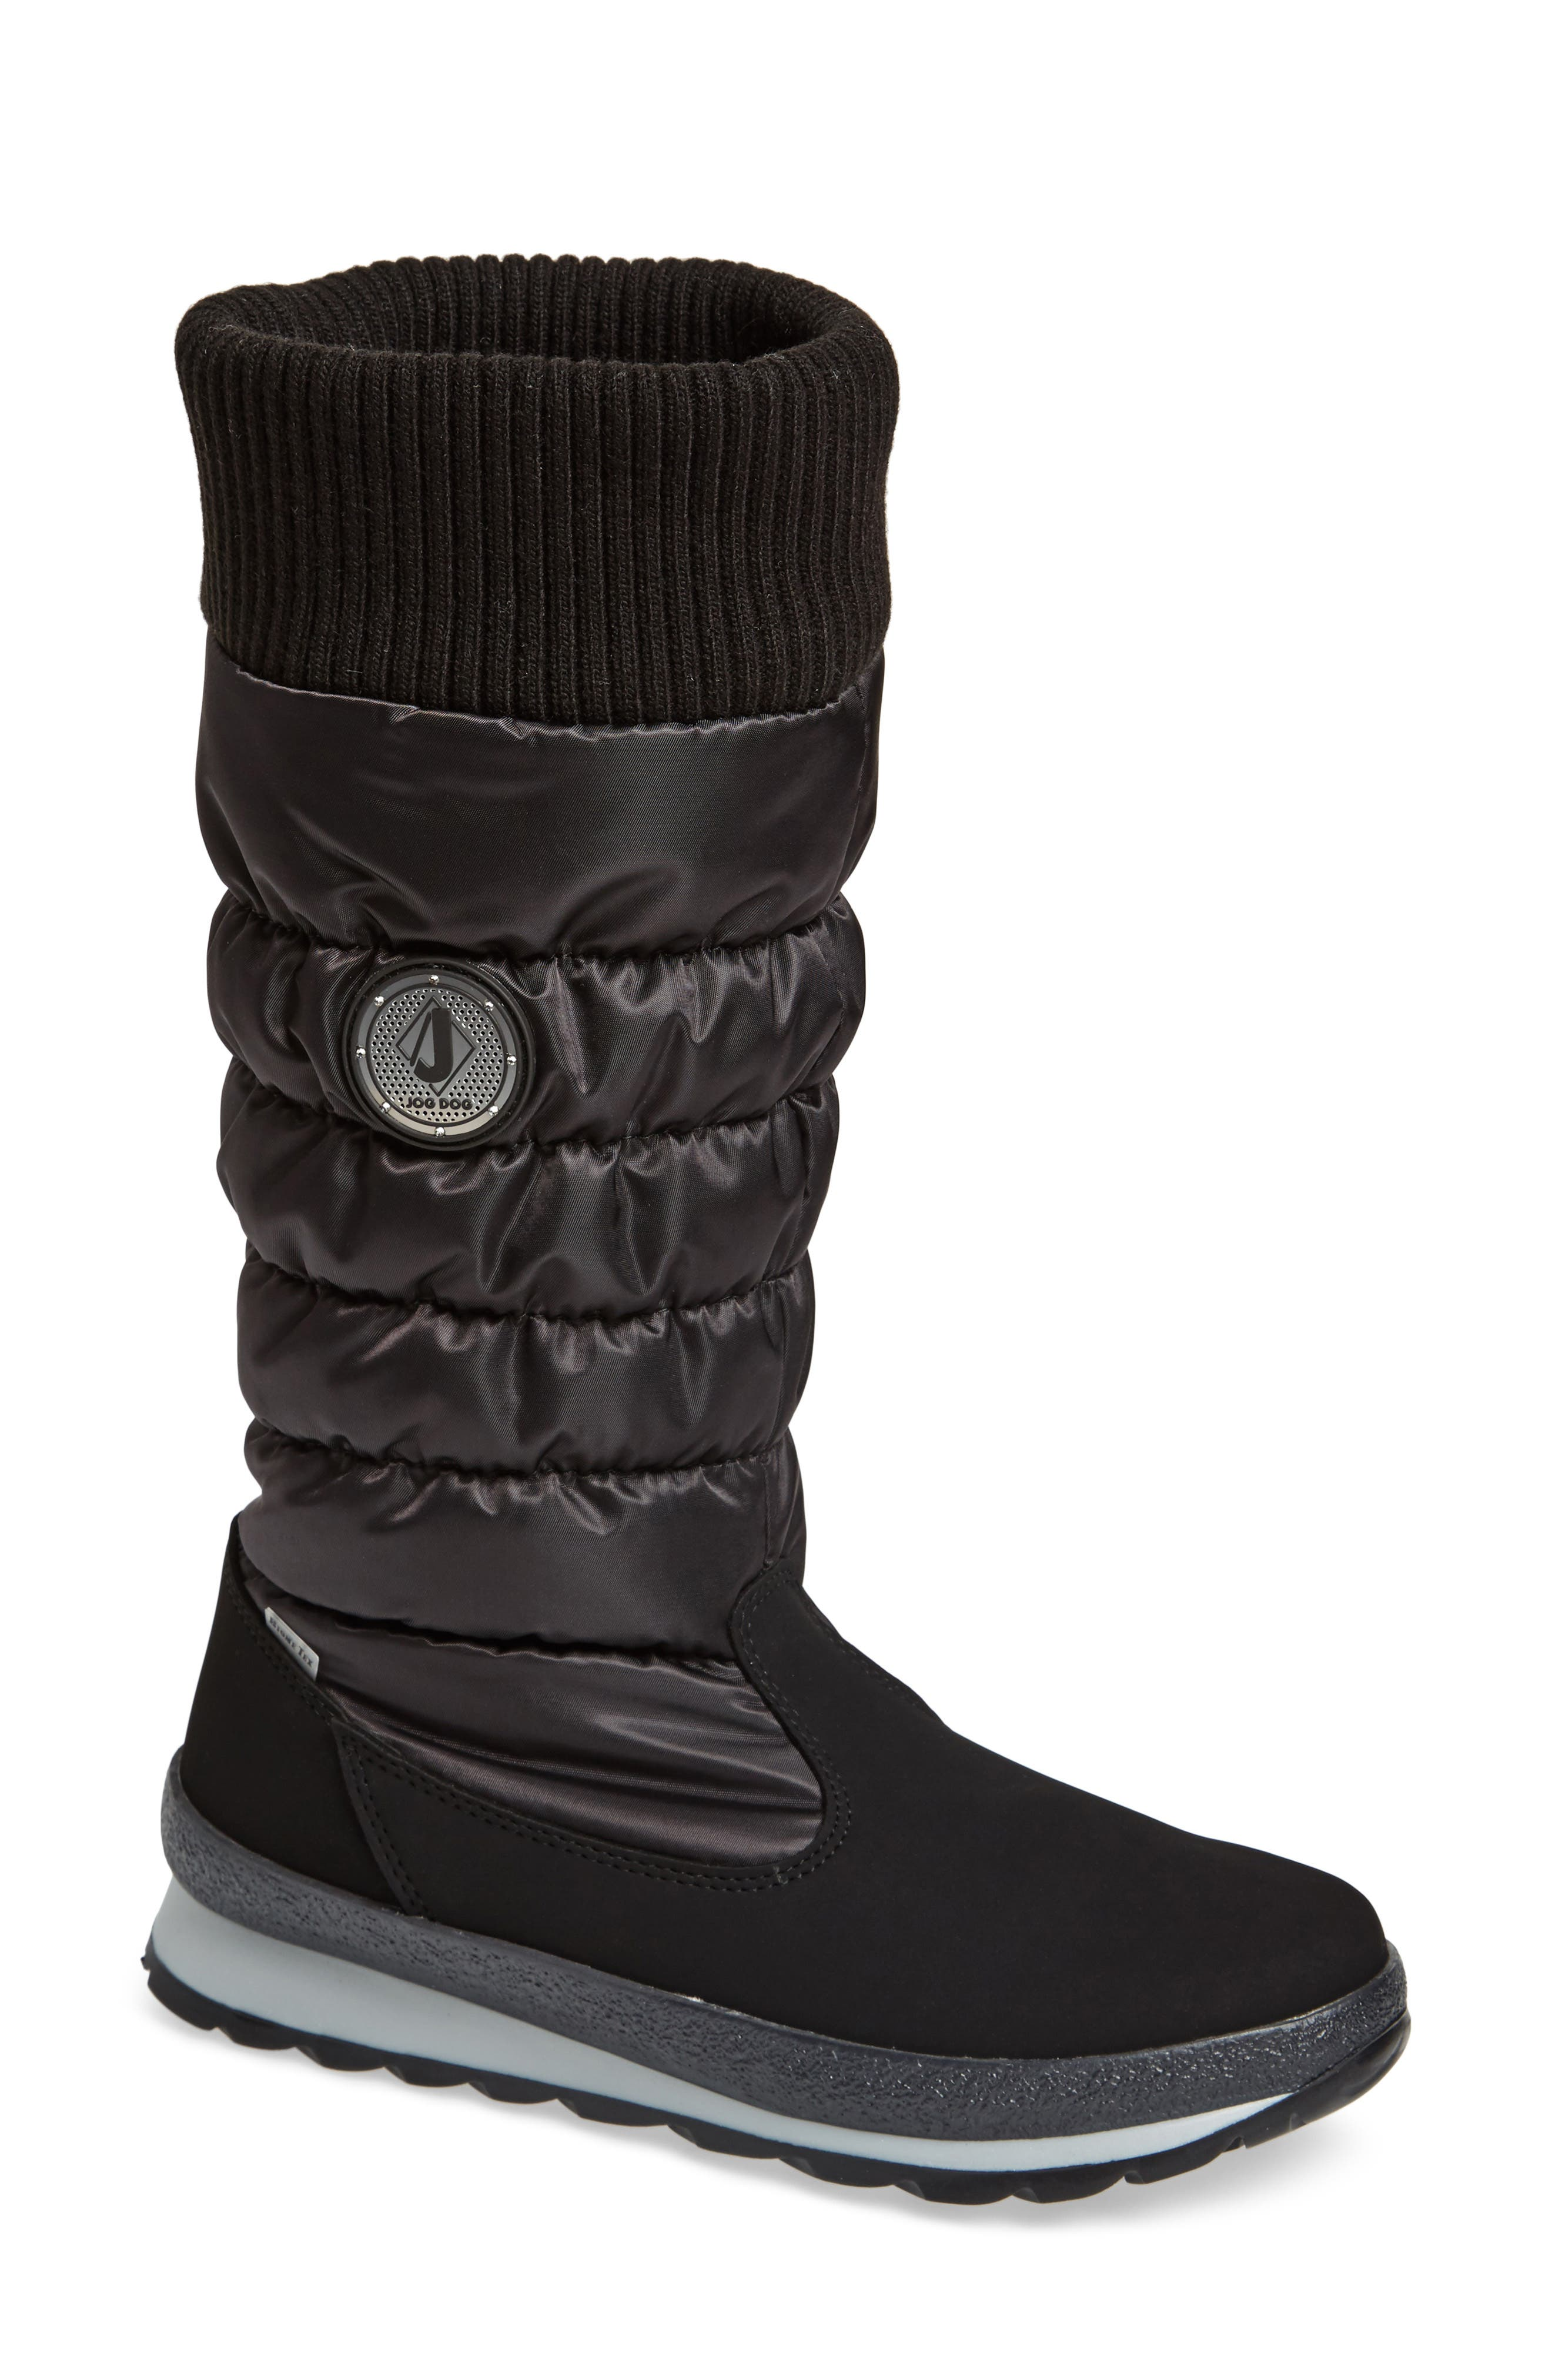 St. Anton Waterproof Winter Boot,                             Main thumbnail 1, color,                             BLACK/ ANTHRACITE